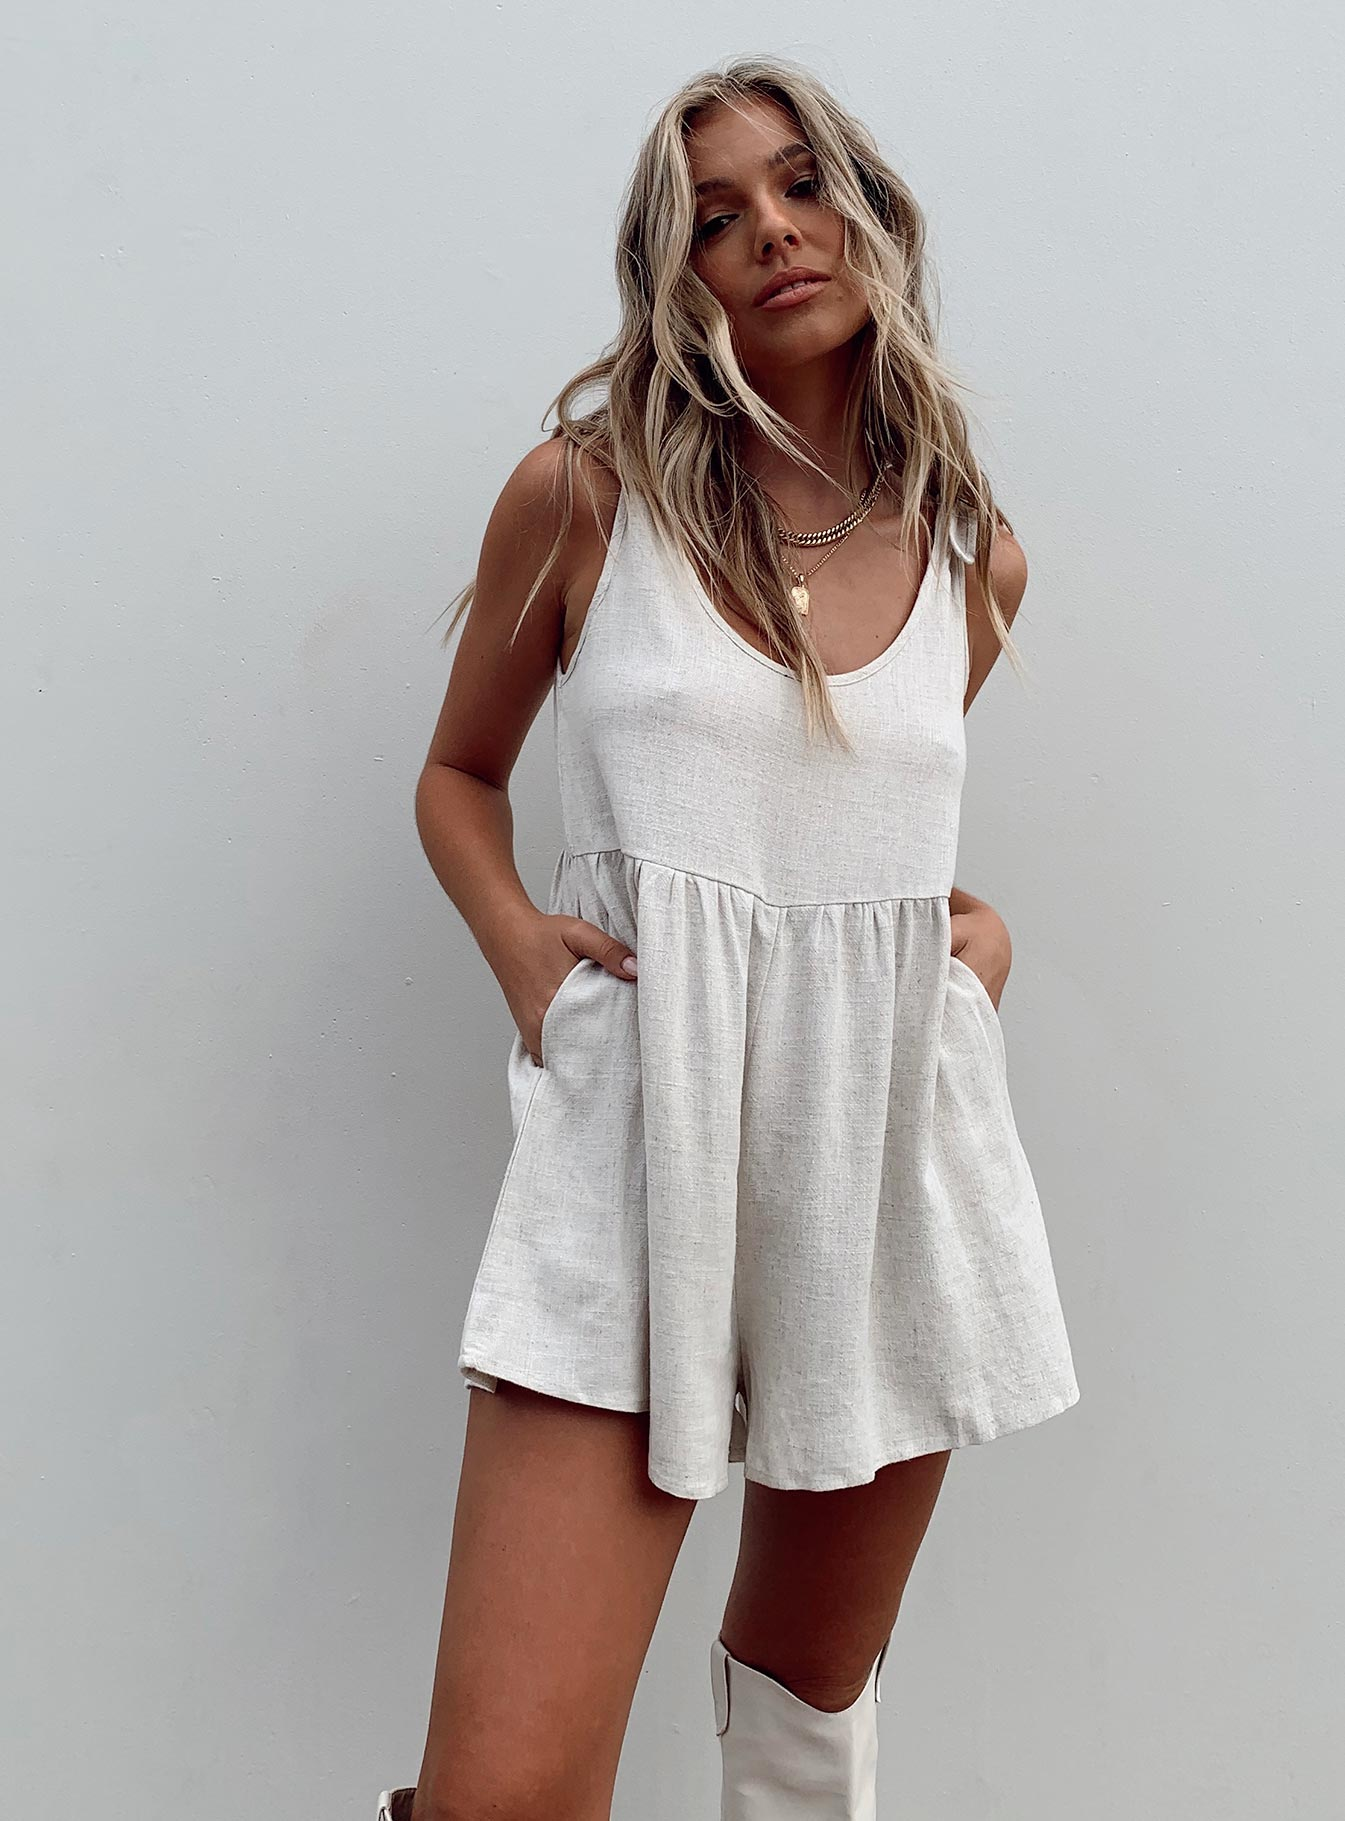 Playsuits / Rompers (Side A)